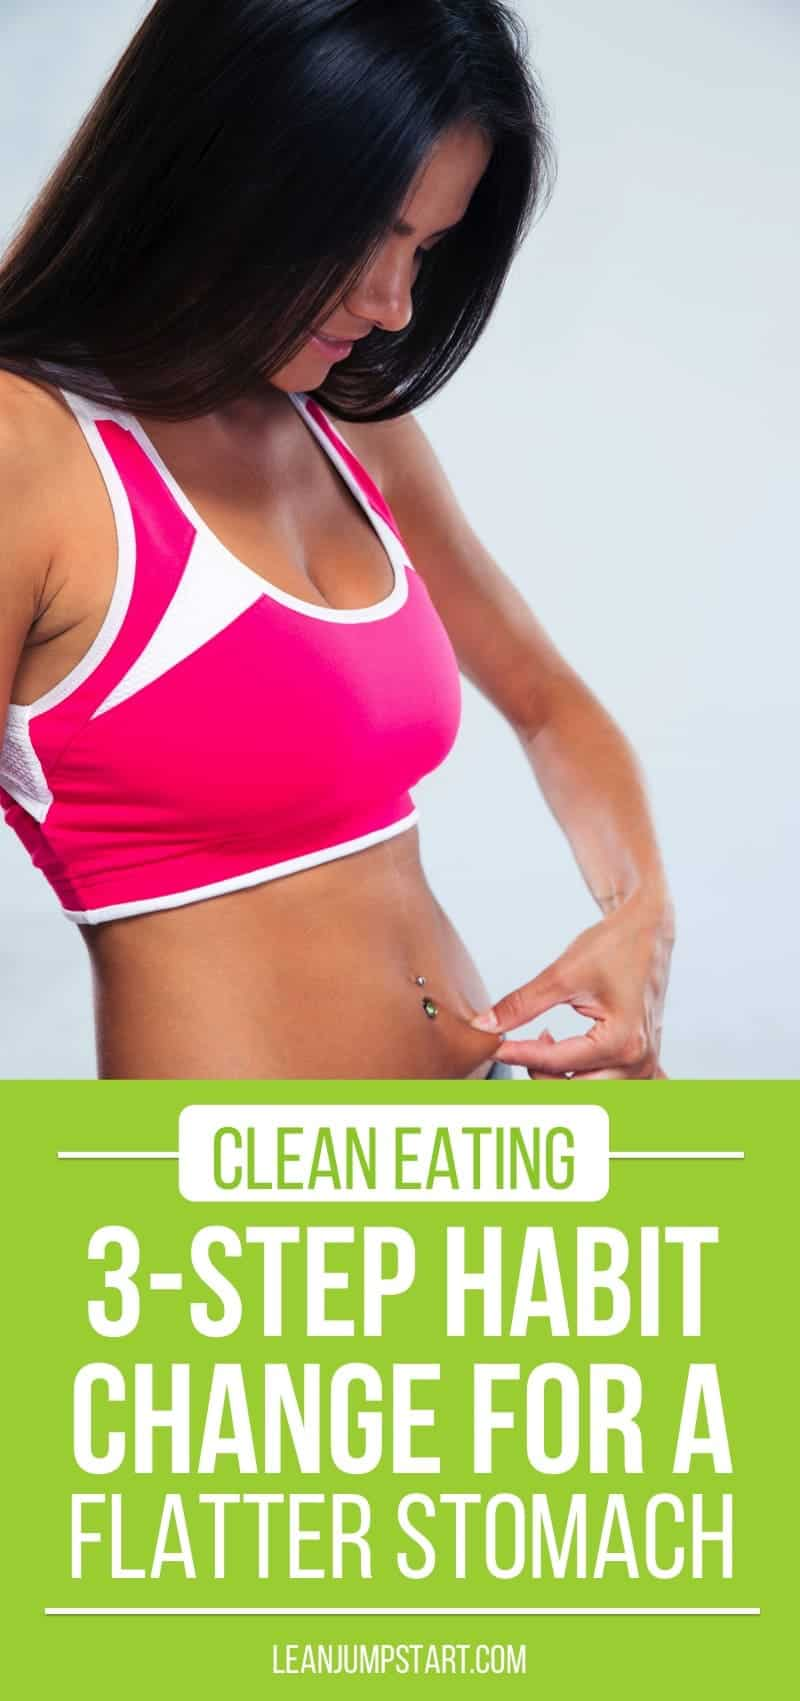 3 steps habits change for a flatter stomach